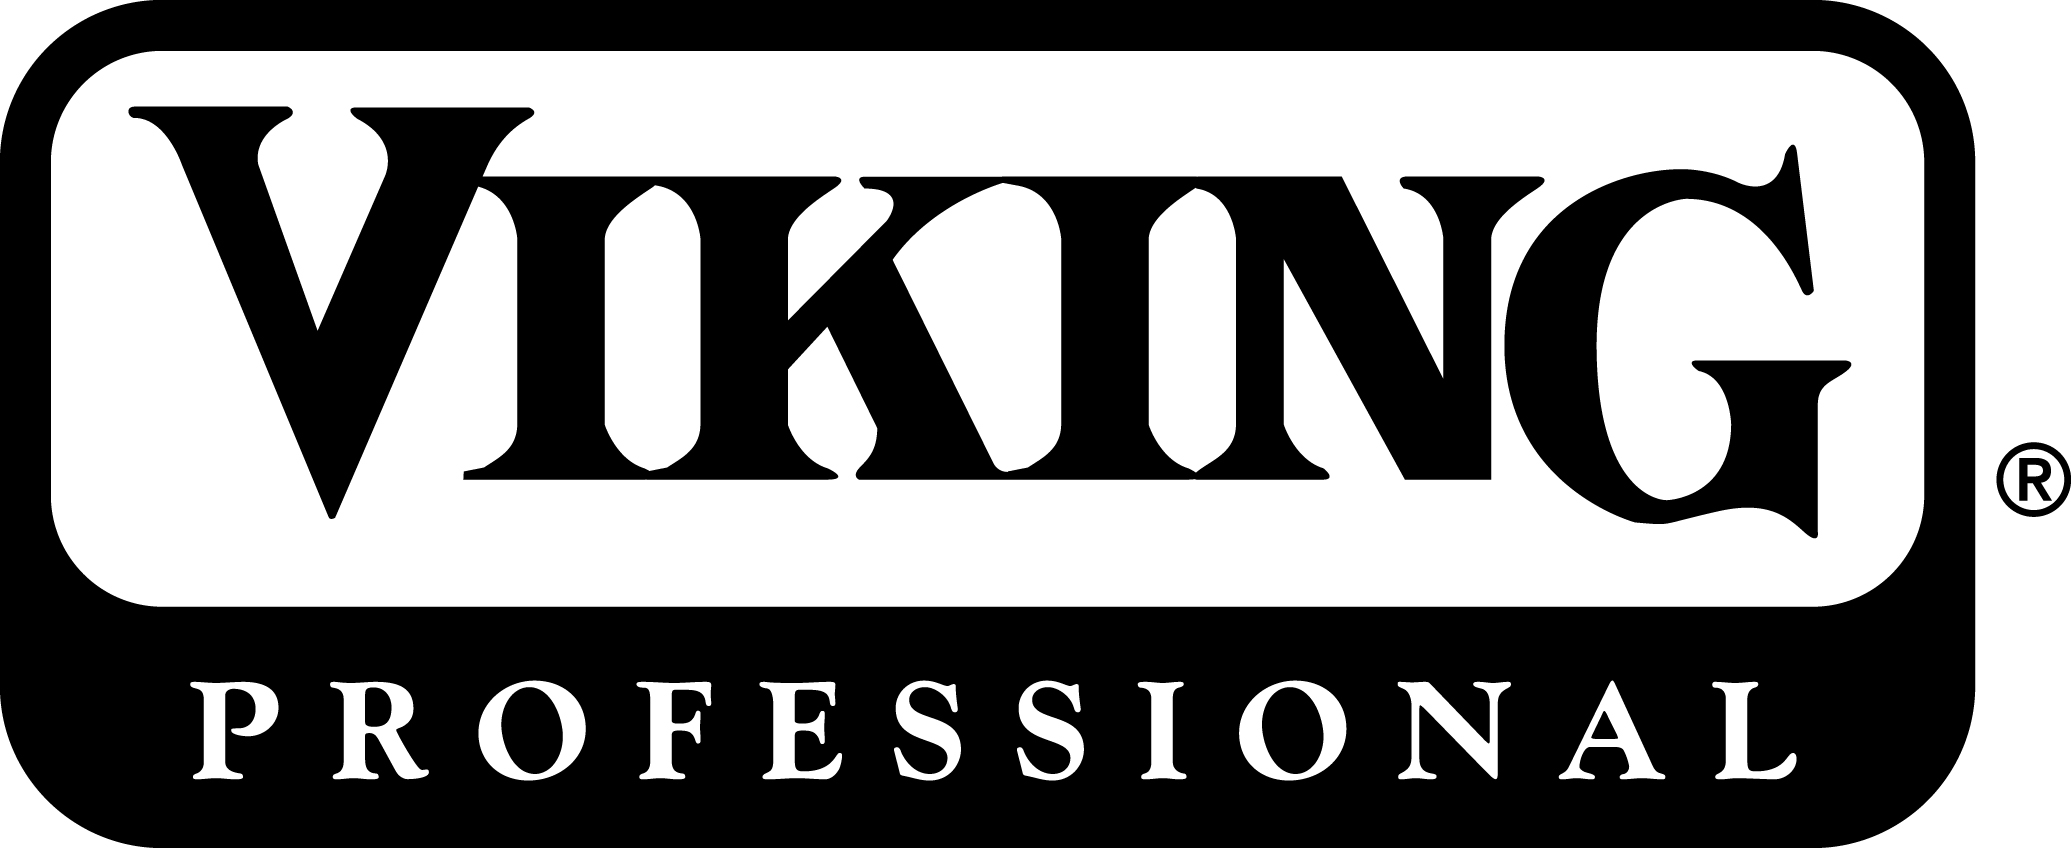 Viking Refrigerator Maintenance, Kenmore Fridge Repair Near Me